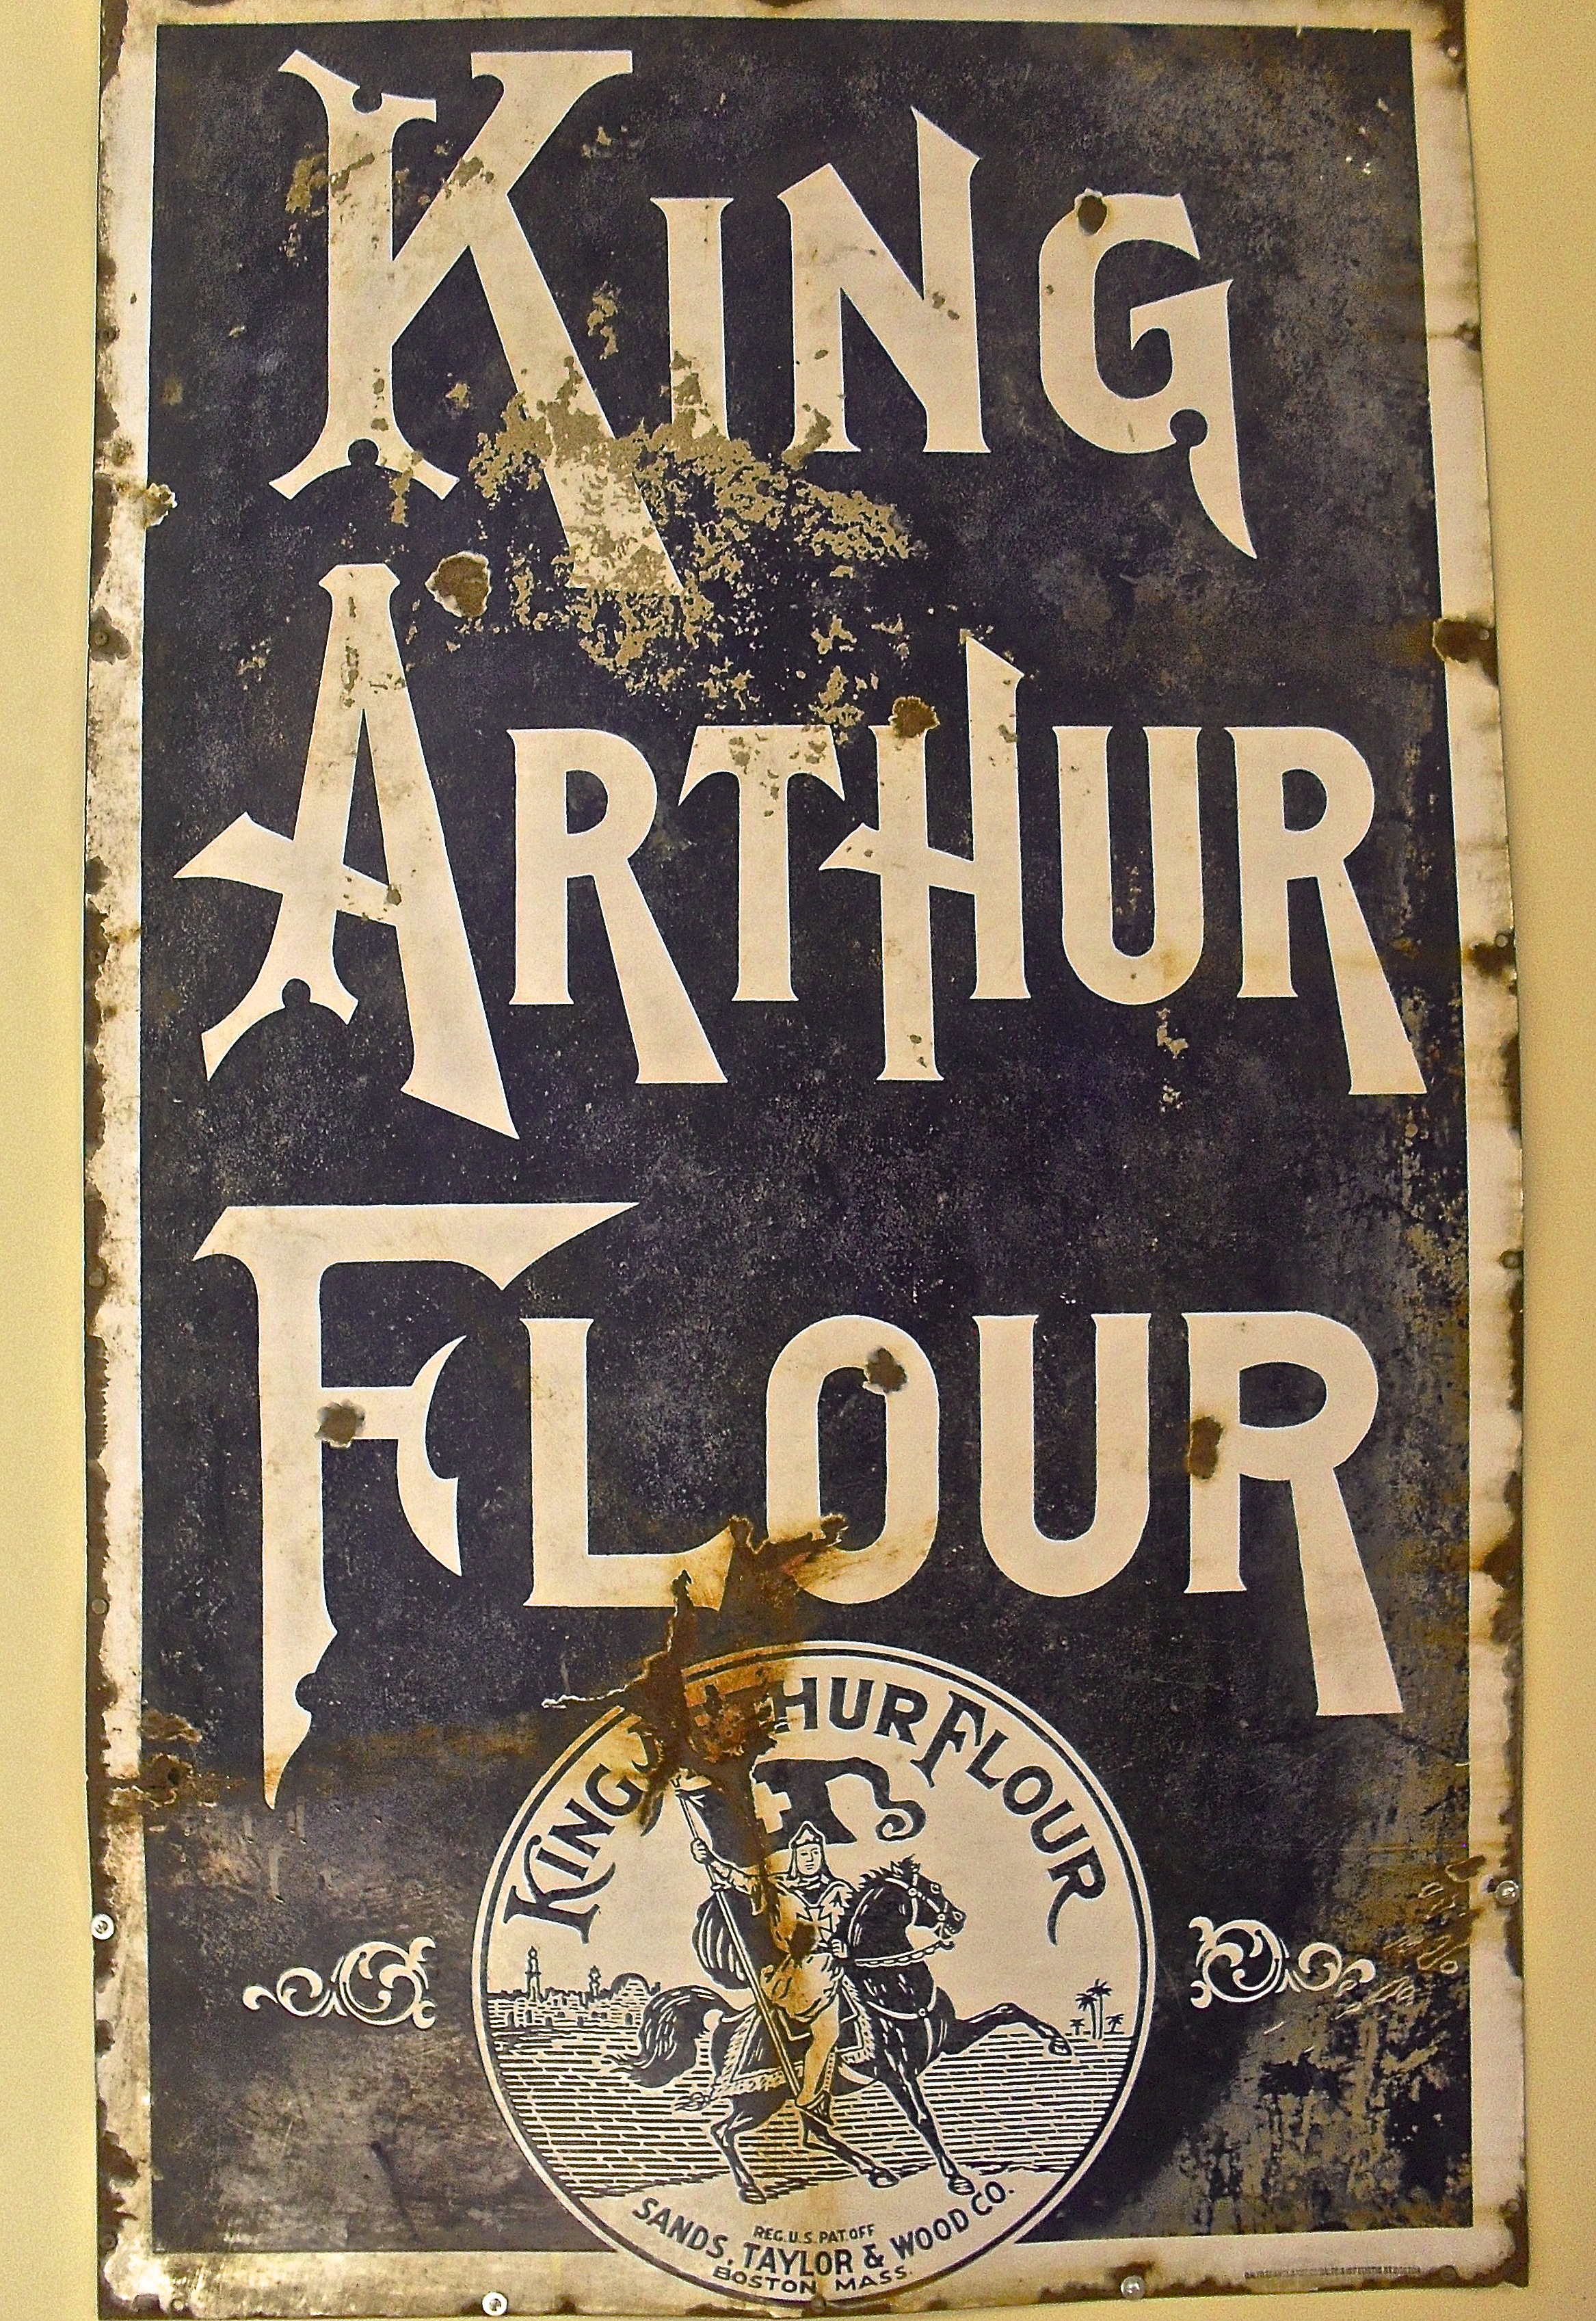 King Arthur Flour is the largest single educator of bakers in the world. Employee owned since , the company conducts a yearly national baking class tour that has provided free baking classes to many thousands of bakers across the U.S.